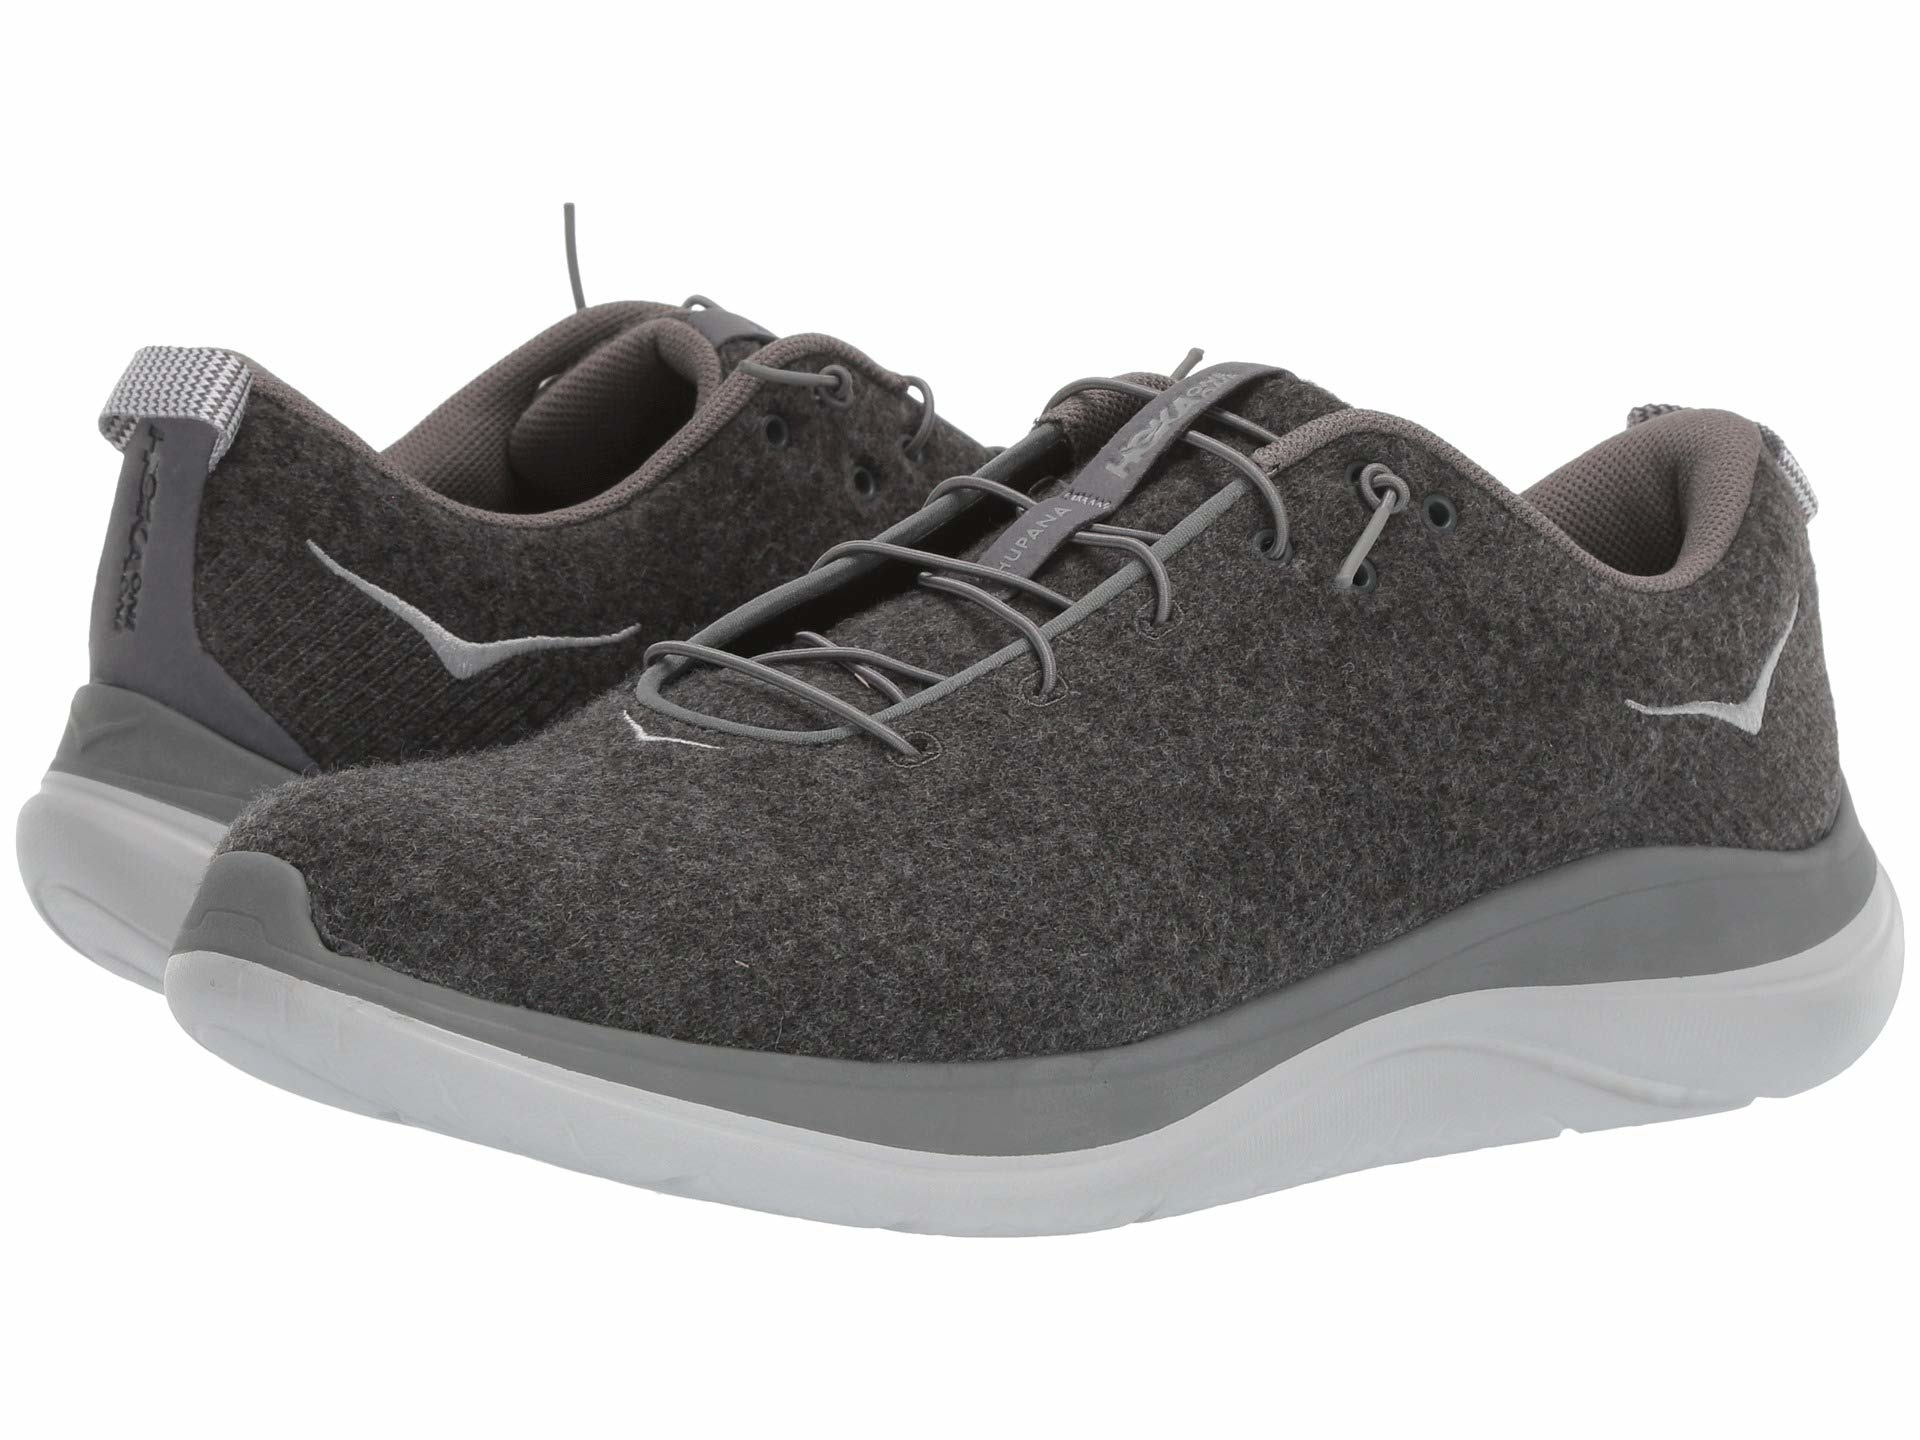 reputable site 1a4cd 15728 M HUPANA FLOW WOOL DARK SHADOW / CHARCOAL GRAY